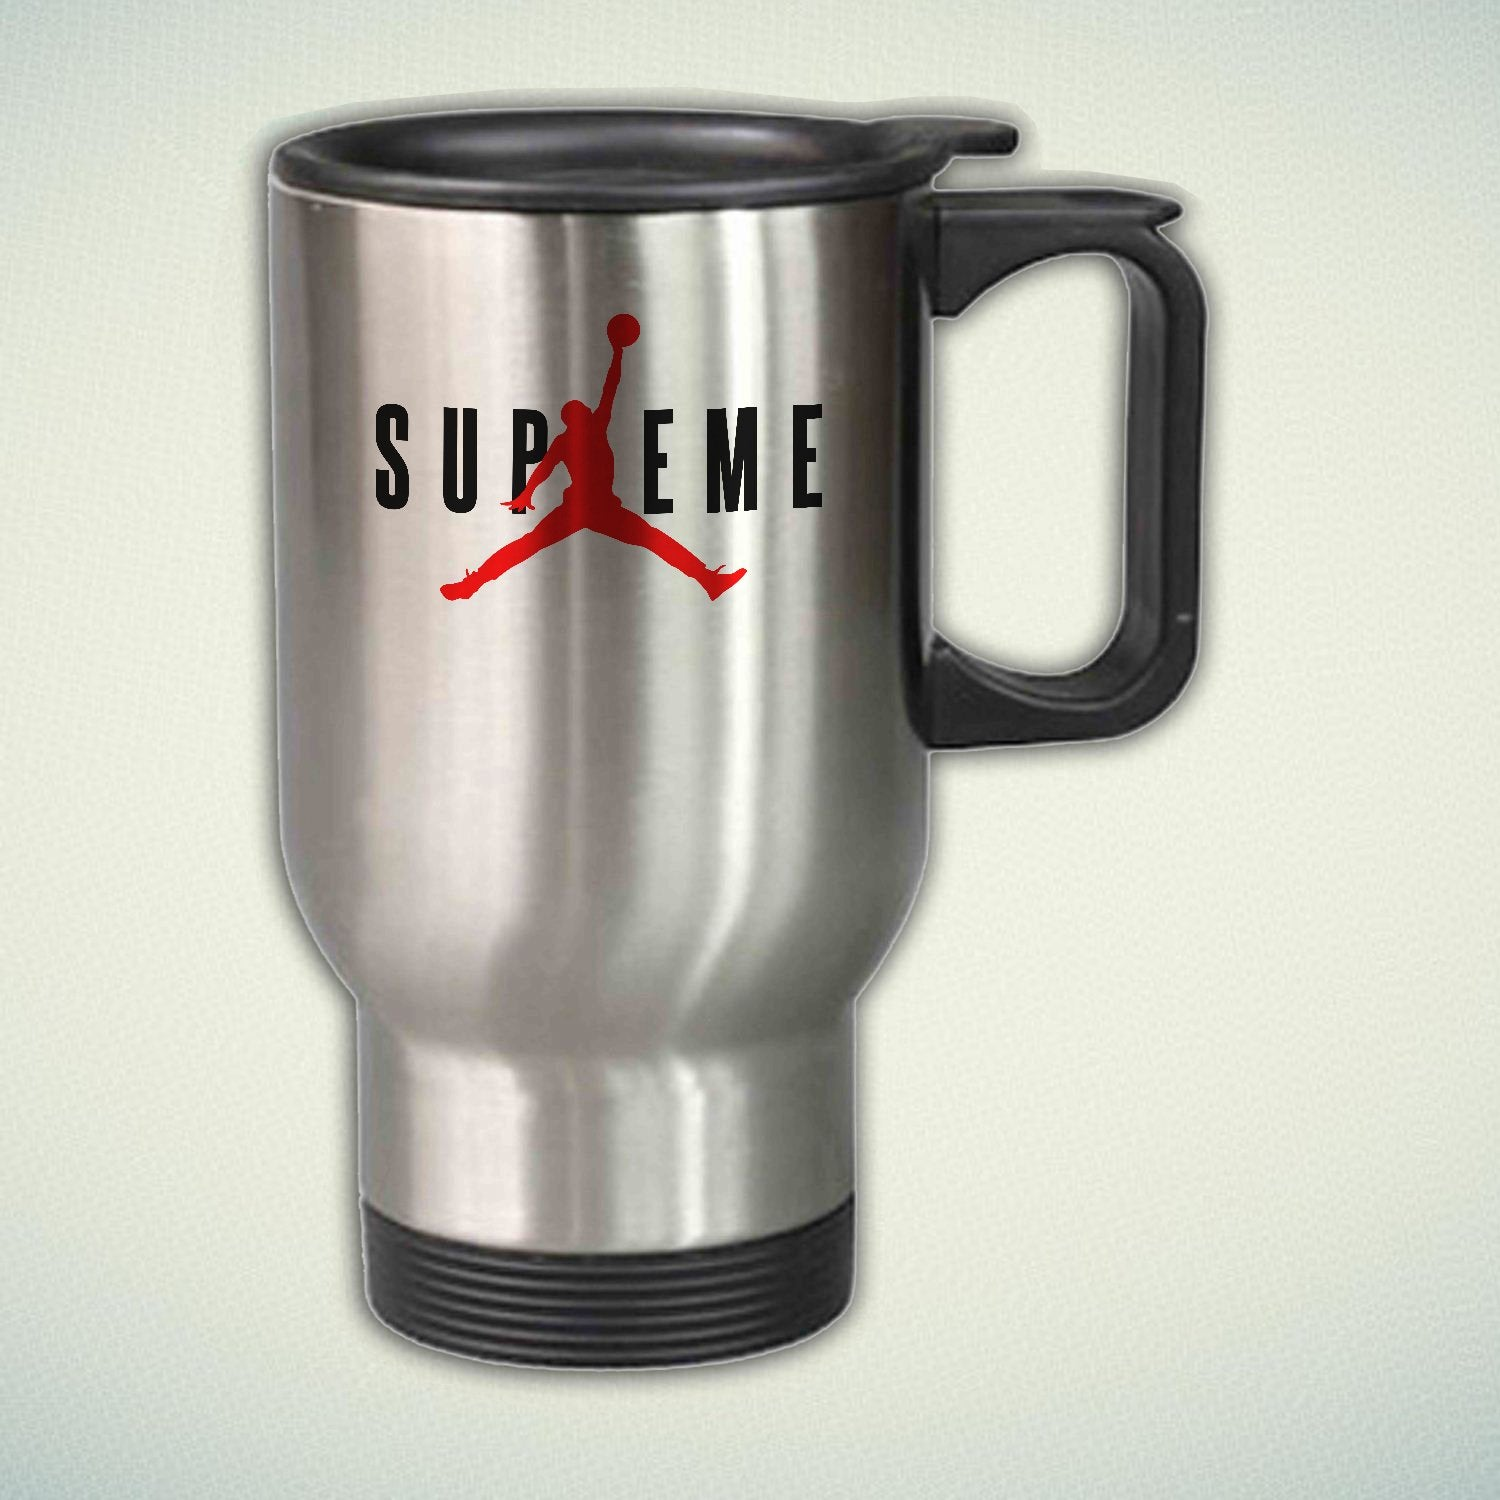 Air Jordan X Supreme 14oz Stainless Steel Travel Mug